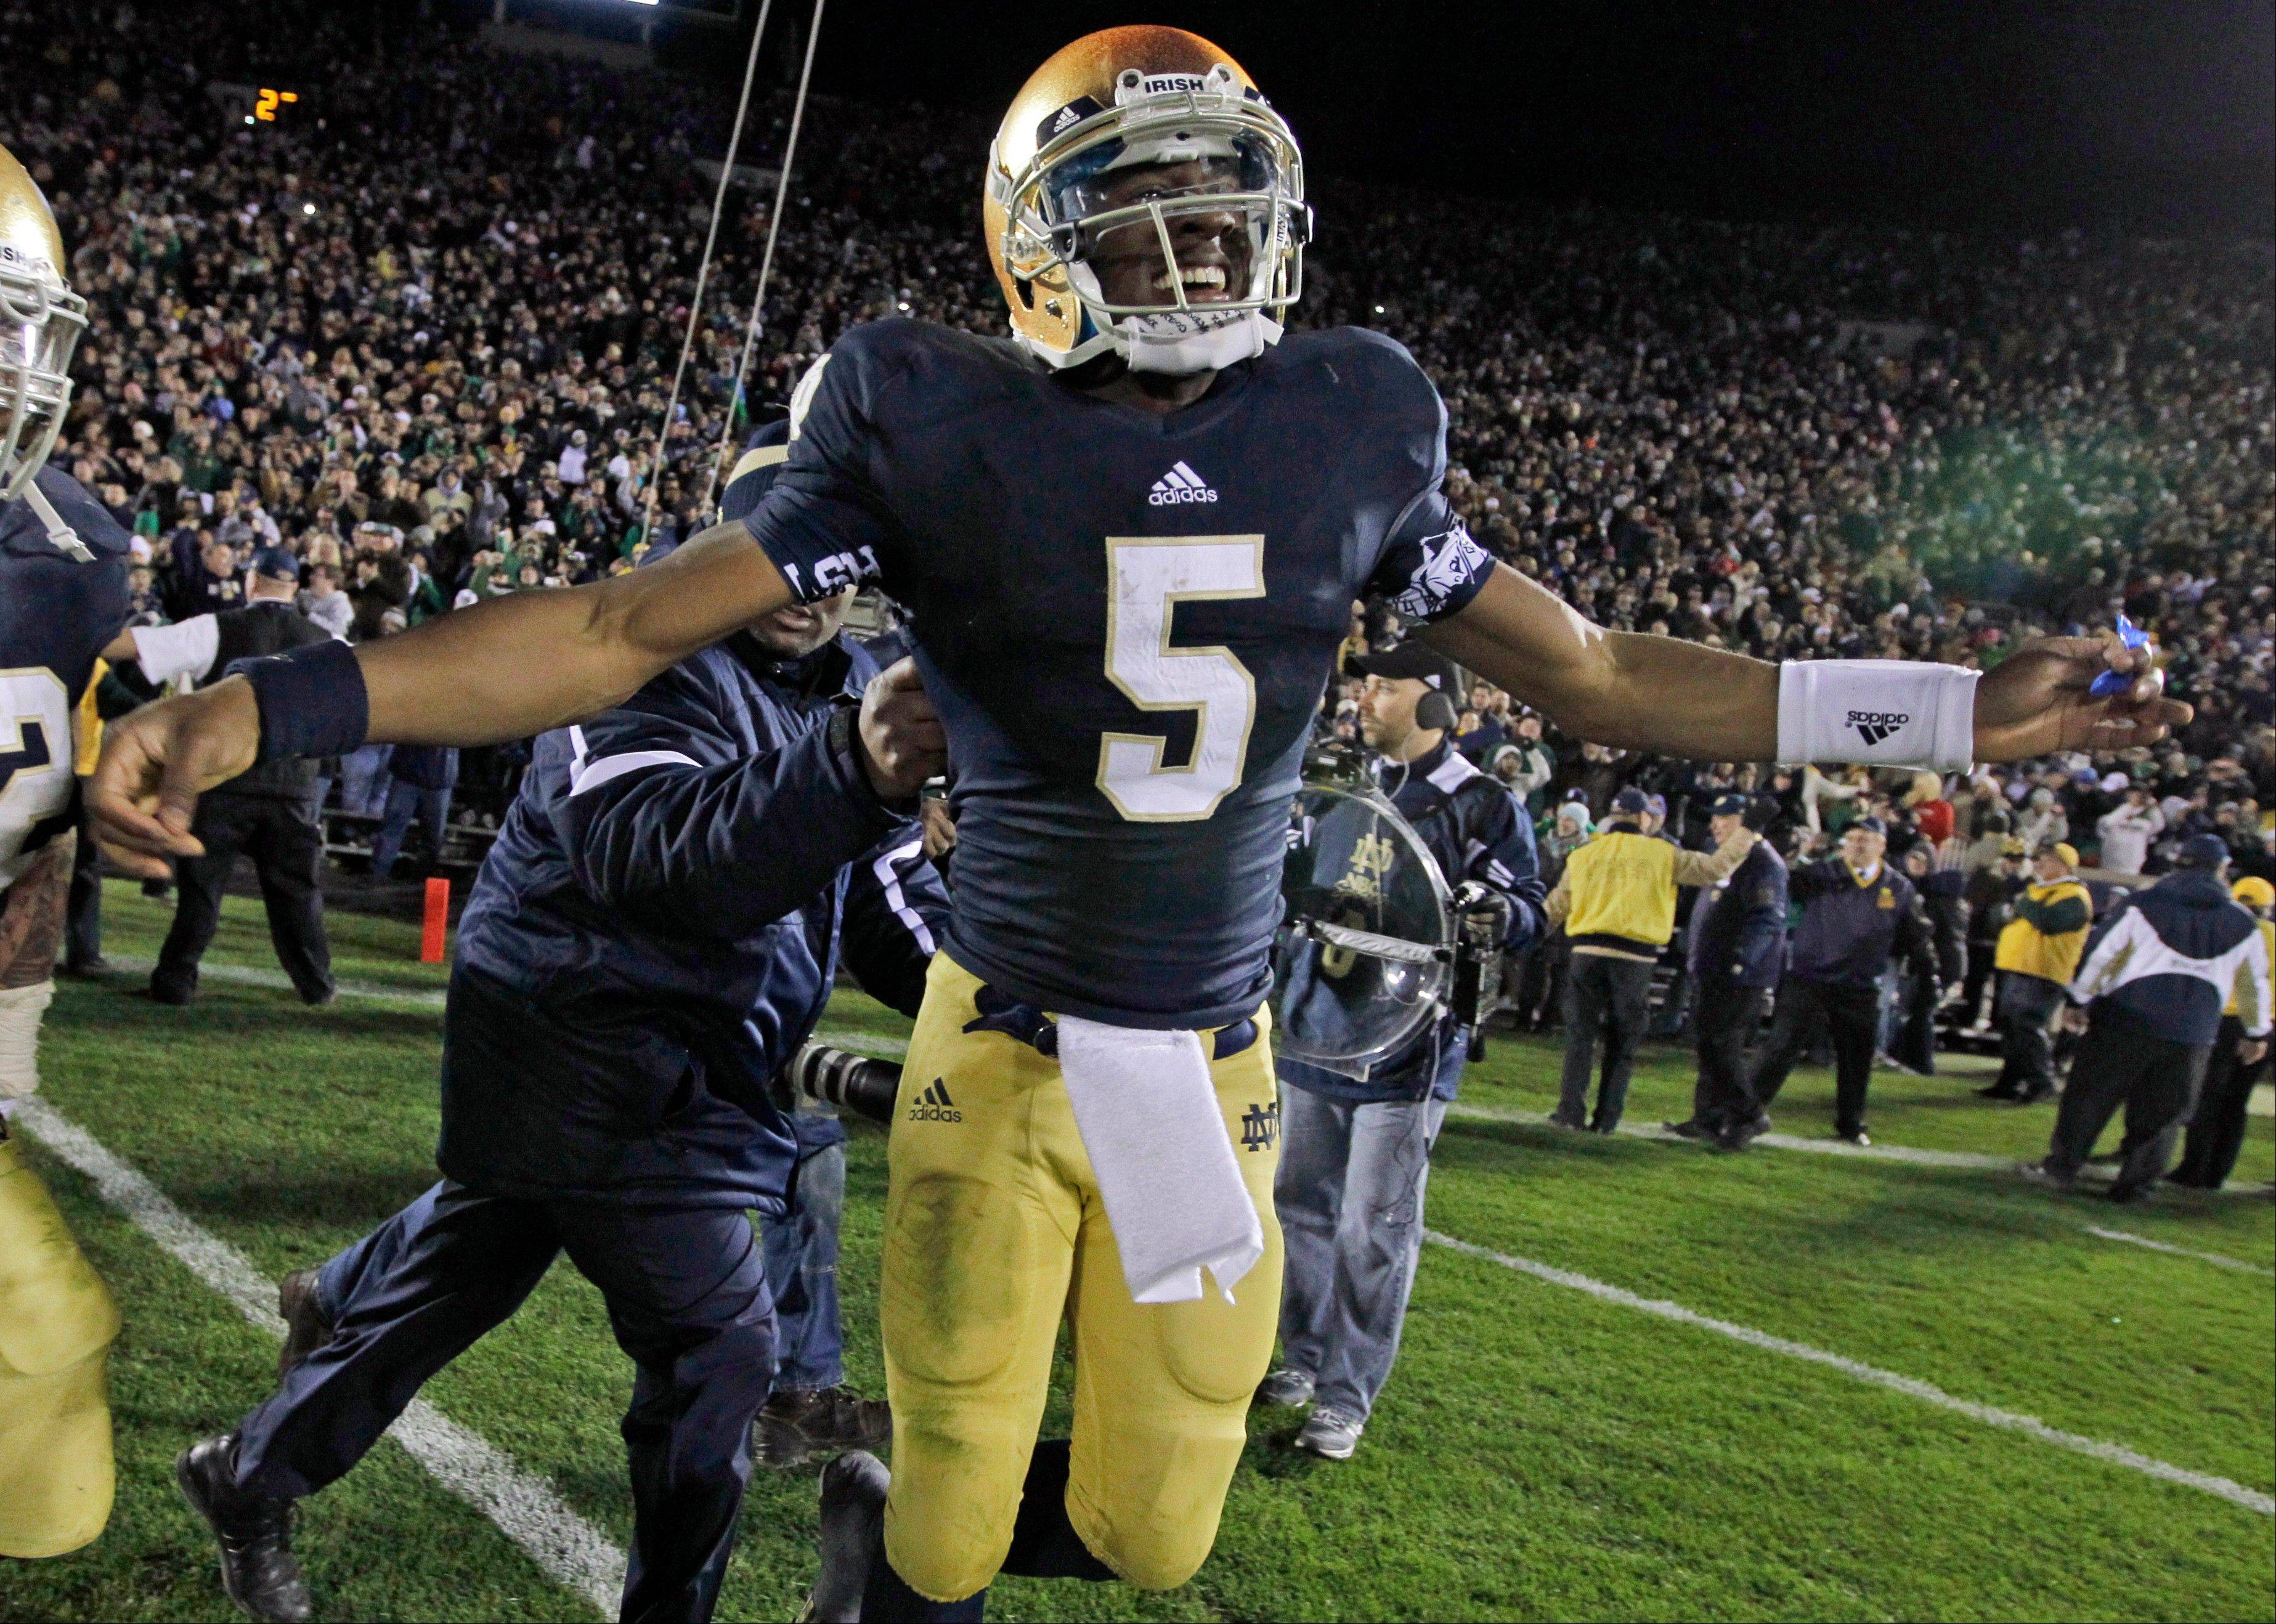 Notre Dame quarterback Everett Golson celebrates after scoring the winning touchdown in the third overtime period against Pittsburgh on Nov. 3, 2012, in South Bend, Ind.